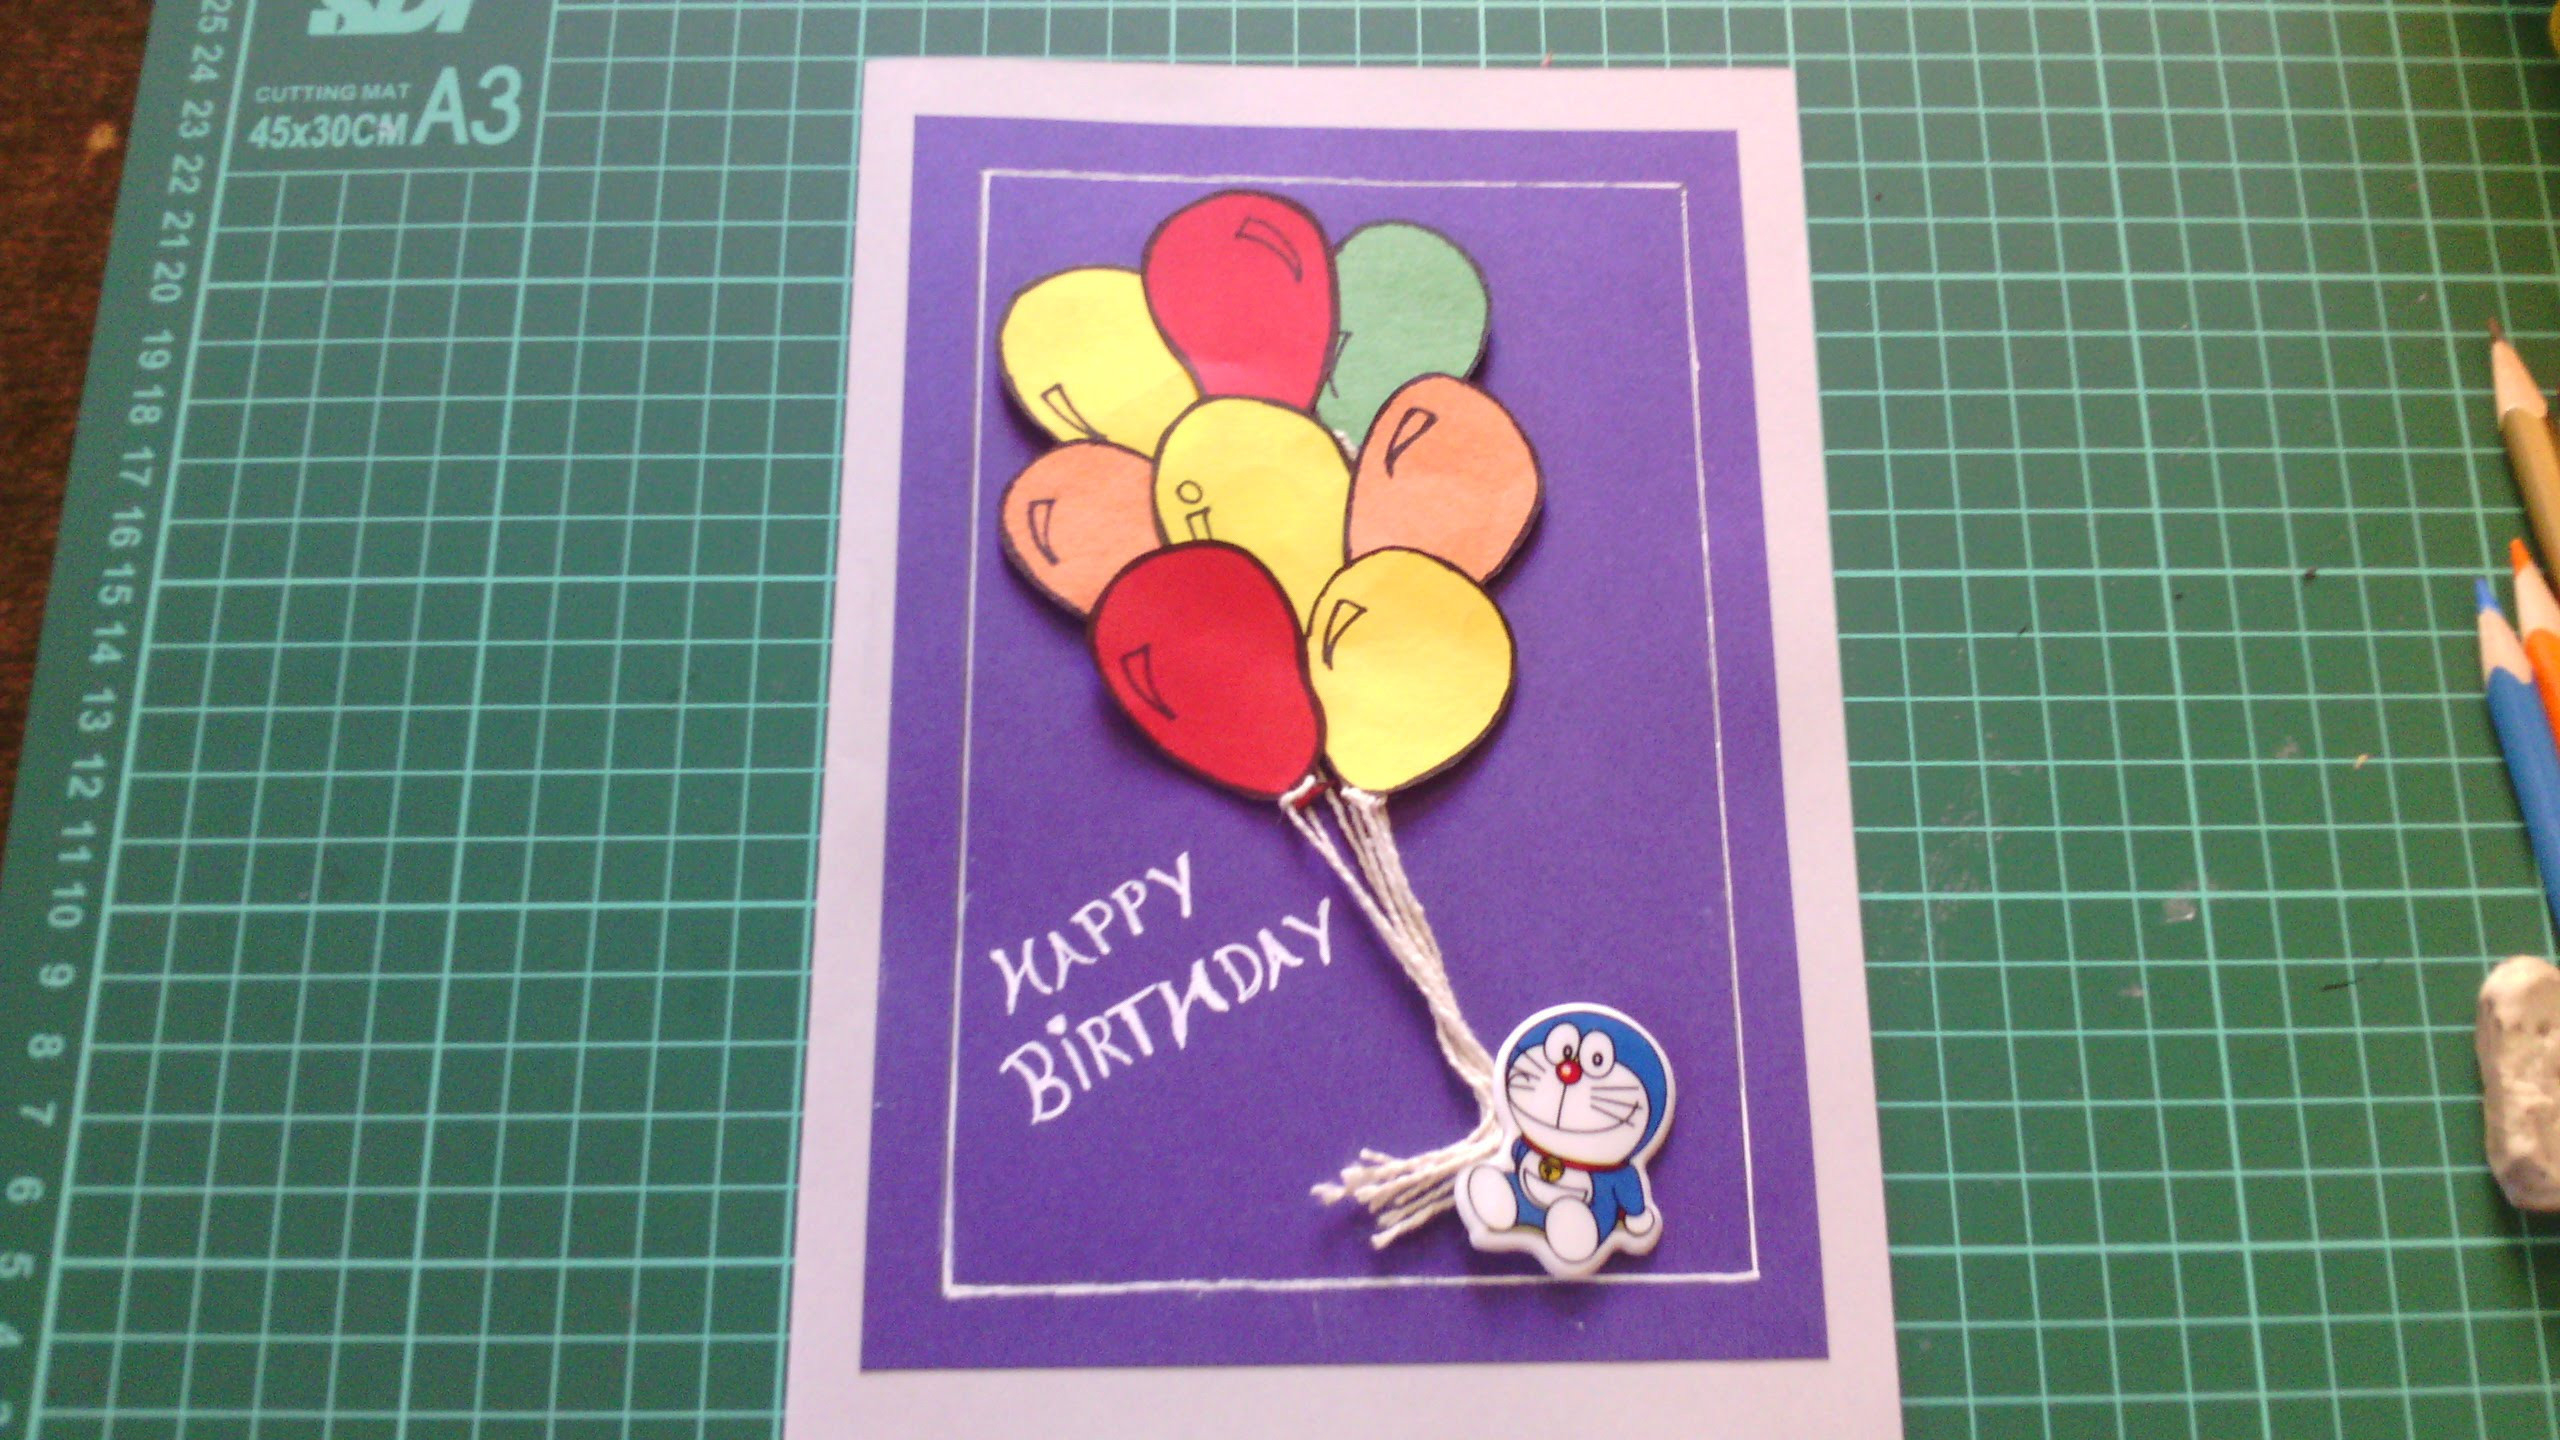 13 Year Old Birthday Card Ideas 93 Birthday Cards For 23 Year Olds Vintage 95 Tshirt 23rd